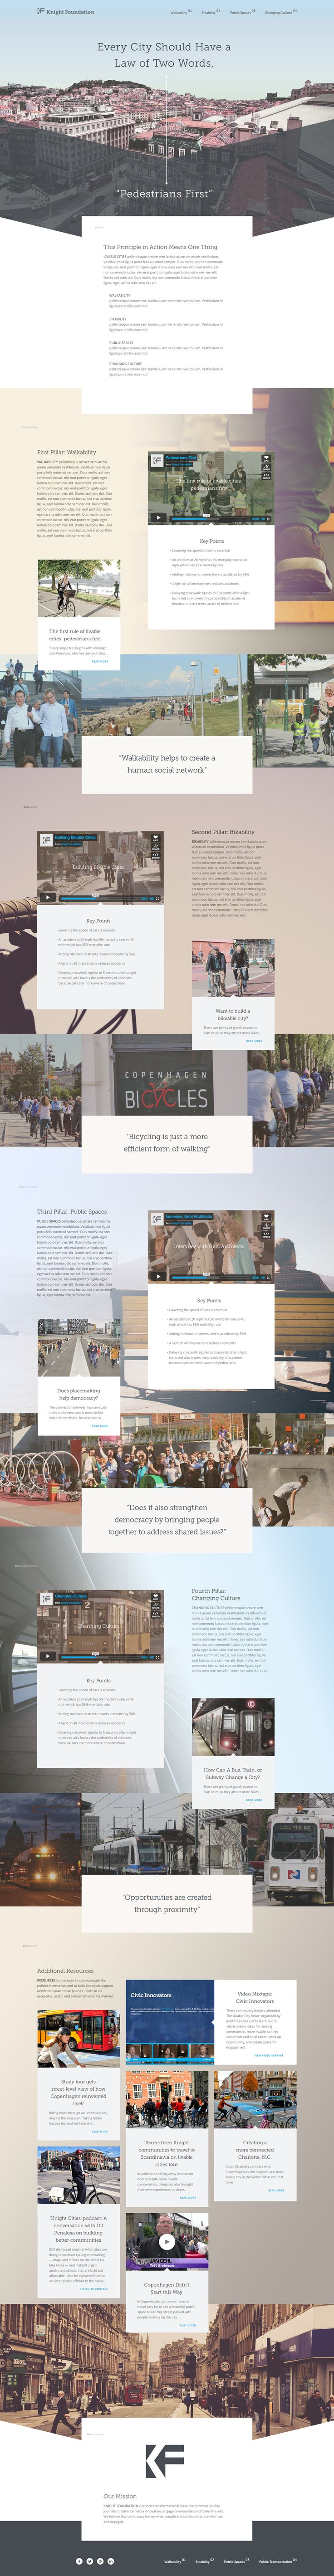 """Livable Cities"" - nice website template. ""Every City Should Have a Law of Two Words: Pedestrians First"" #template #website #city"